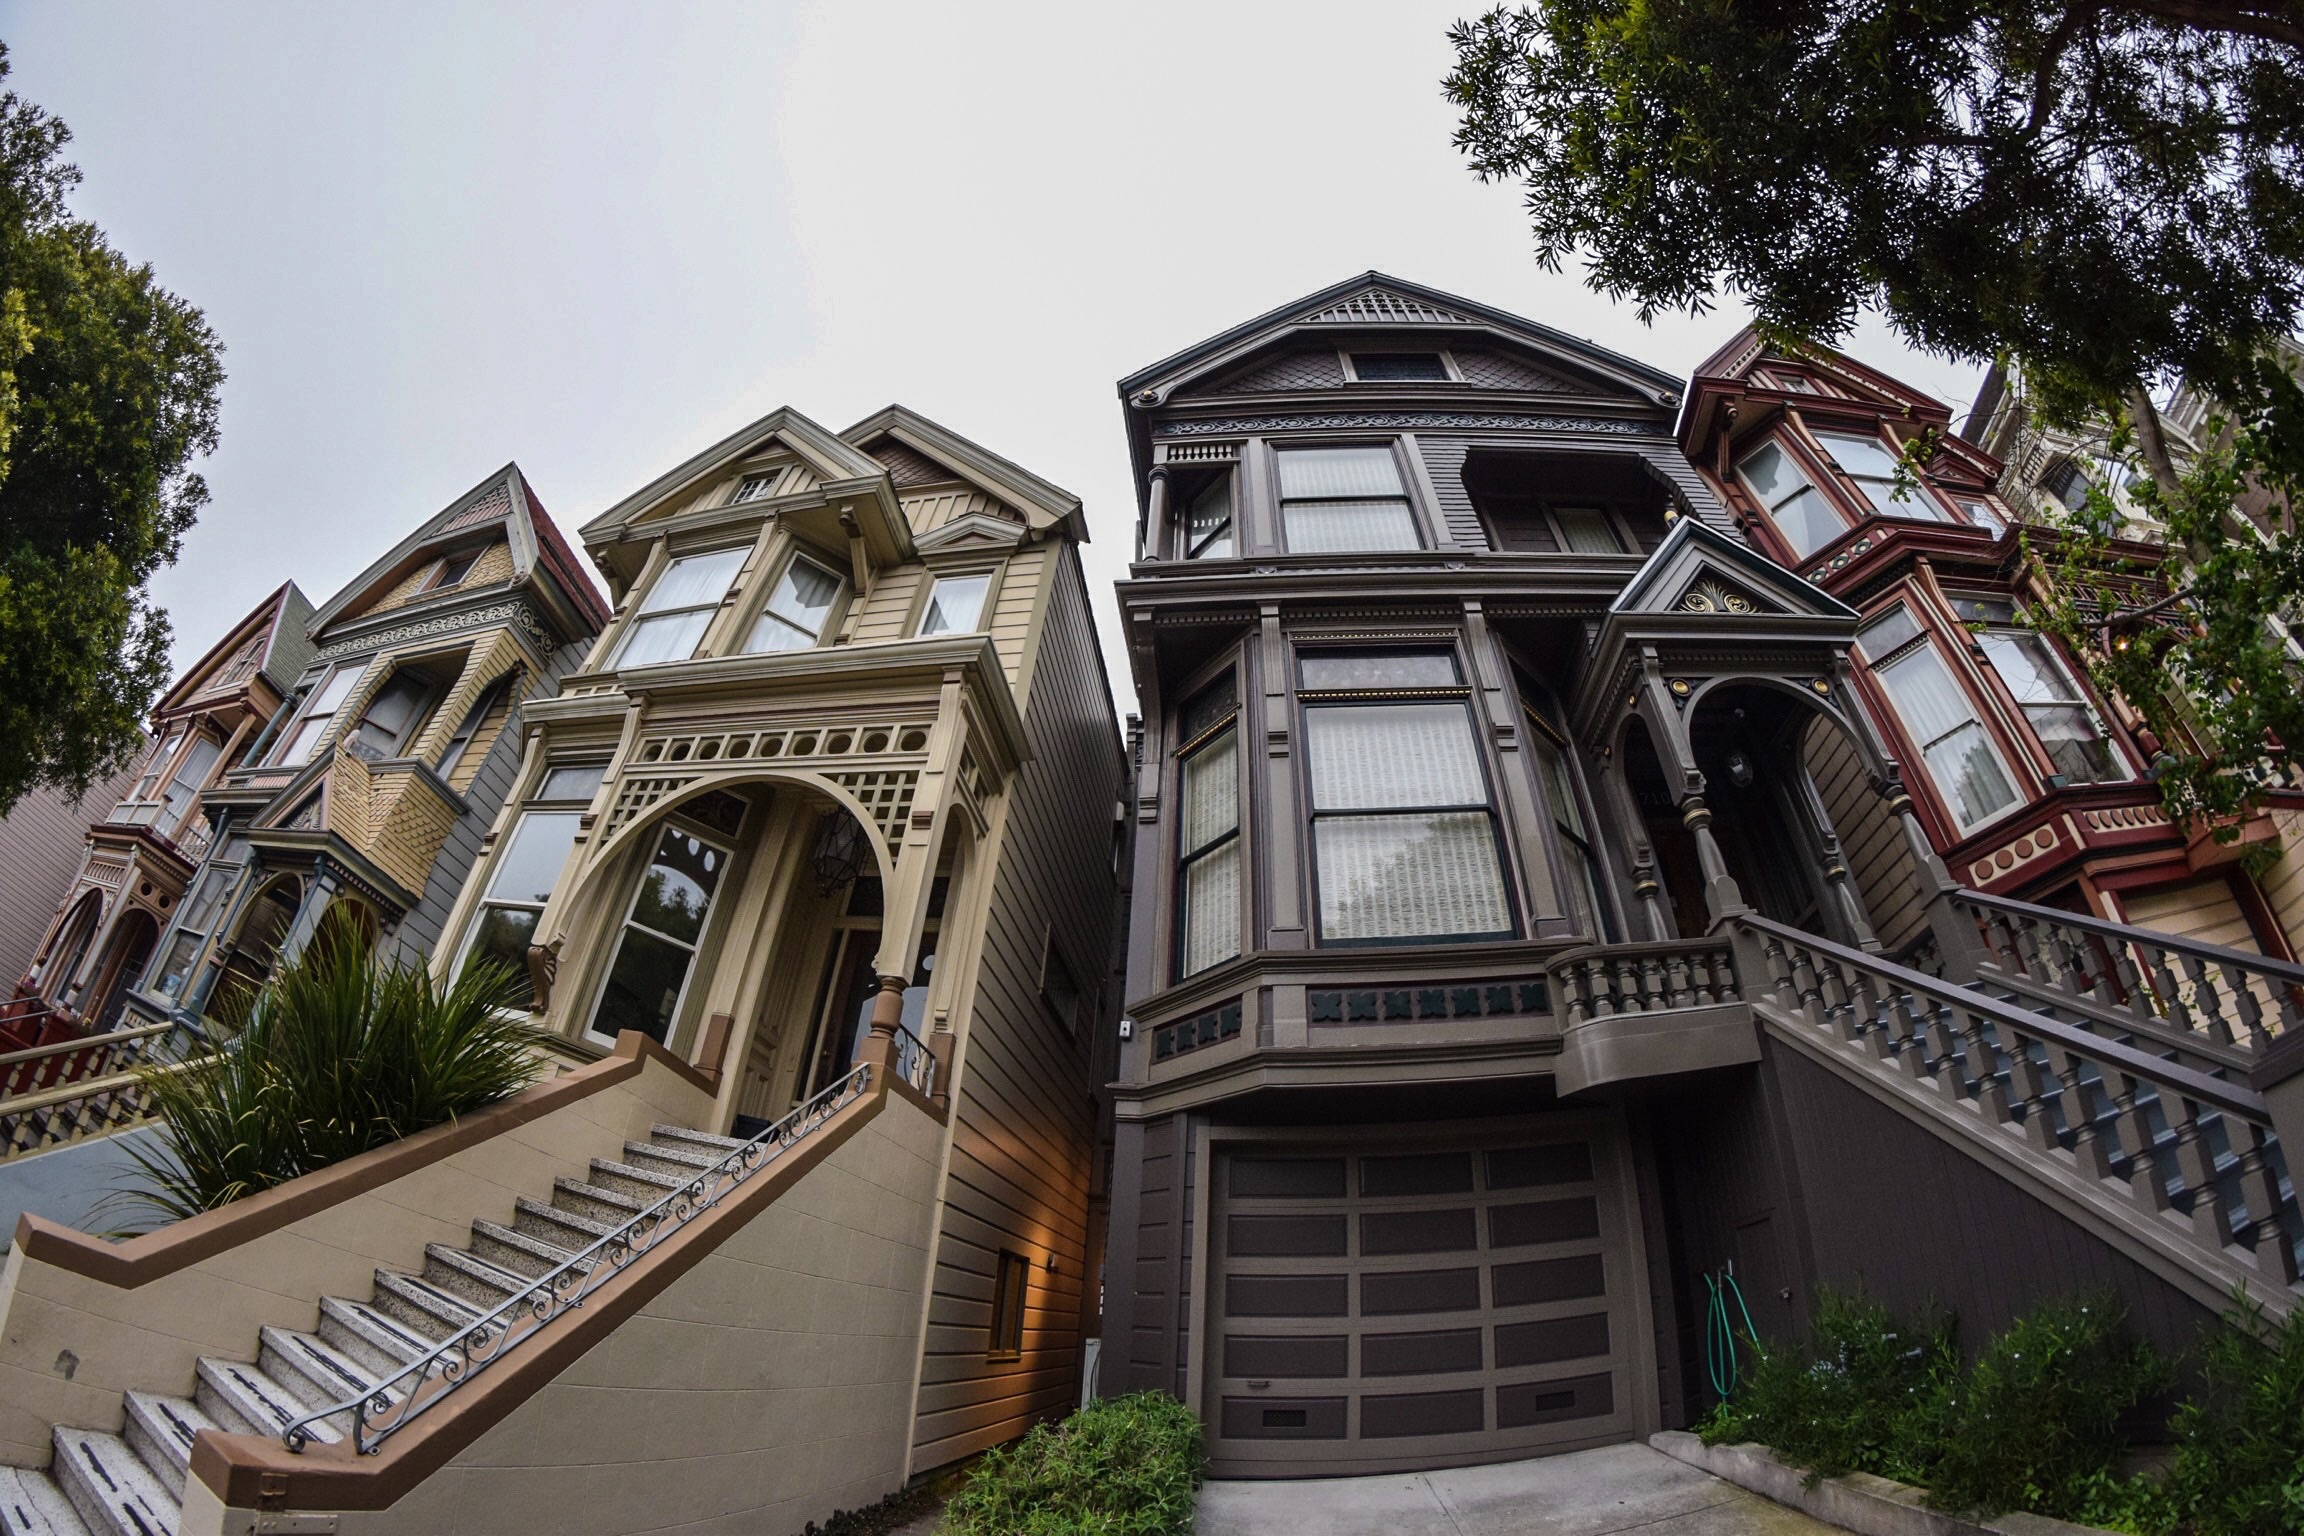 San Francisco - Beautiful Victorian homes abound in San Francisco, including here in Haight-Ashbury